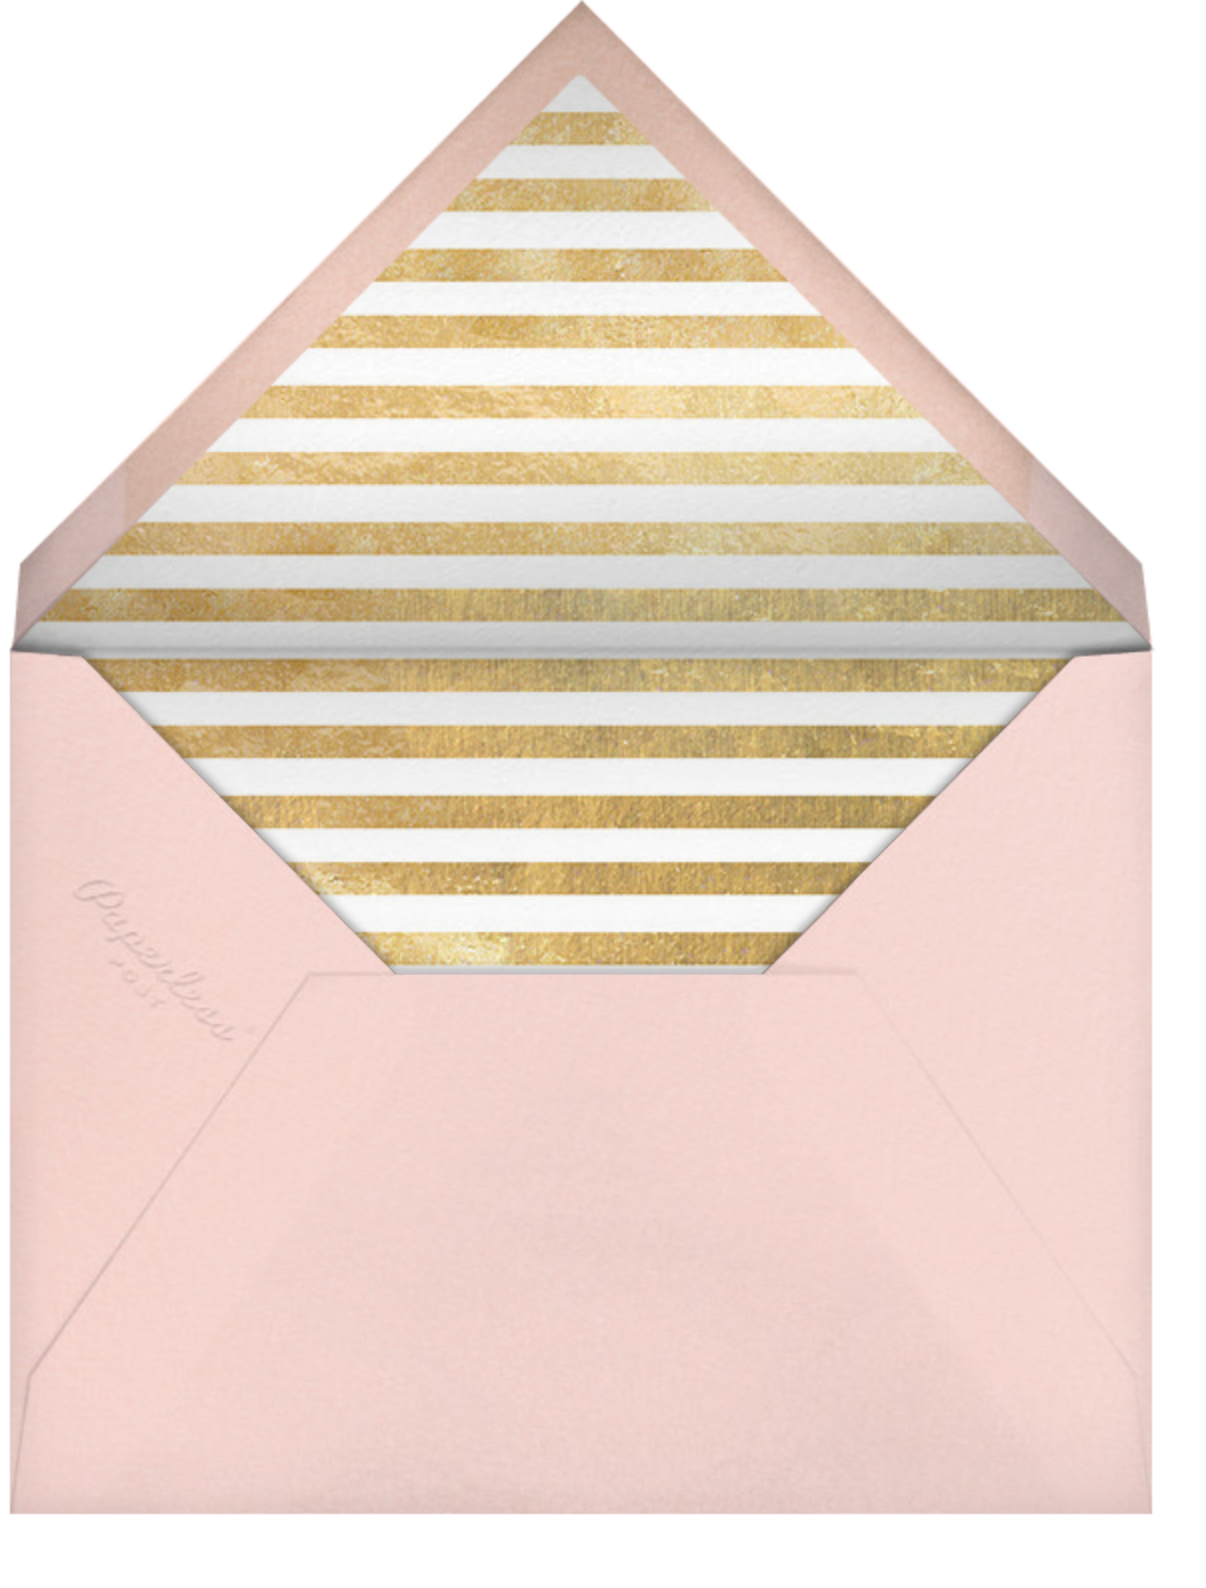 Typographic II (Save the Date) - Meringue - kate spade new york - Save the date - envelope back